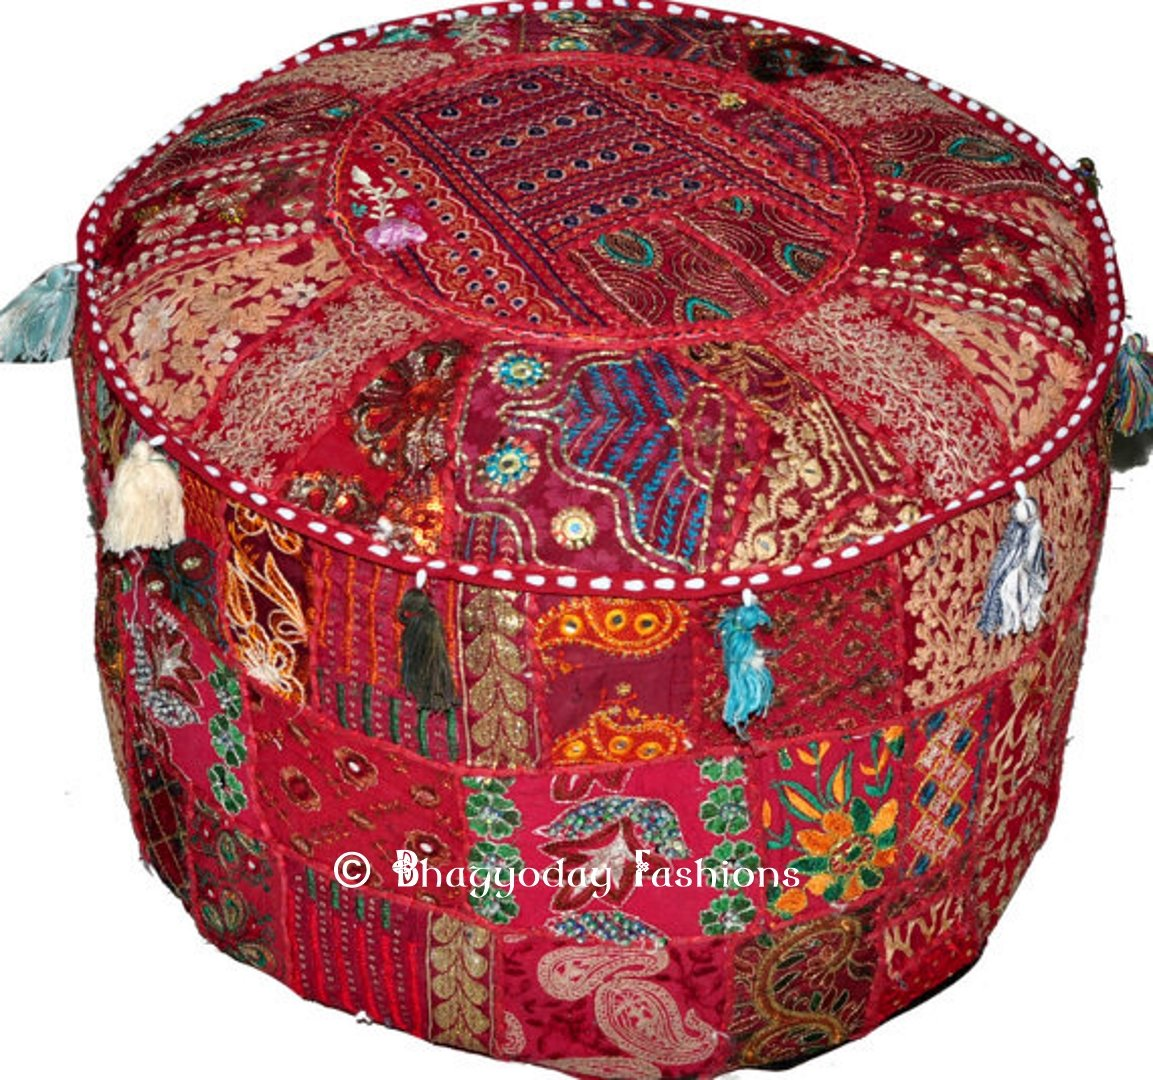 Indian Round Patch Work Embroidered Ottoman Pouf, Indian Round Ottoman Stool Pouf Pillow Patterned Cocktail Vintage Hassock Pouffe, Cotton Handmade Ottoman Pouf, 18x13 Inch. By Bhagyoday by BhagyodayFashions Bhagyoday Fashions